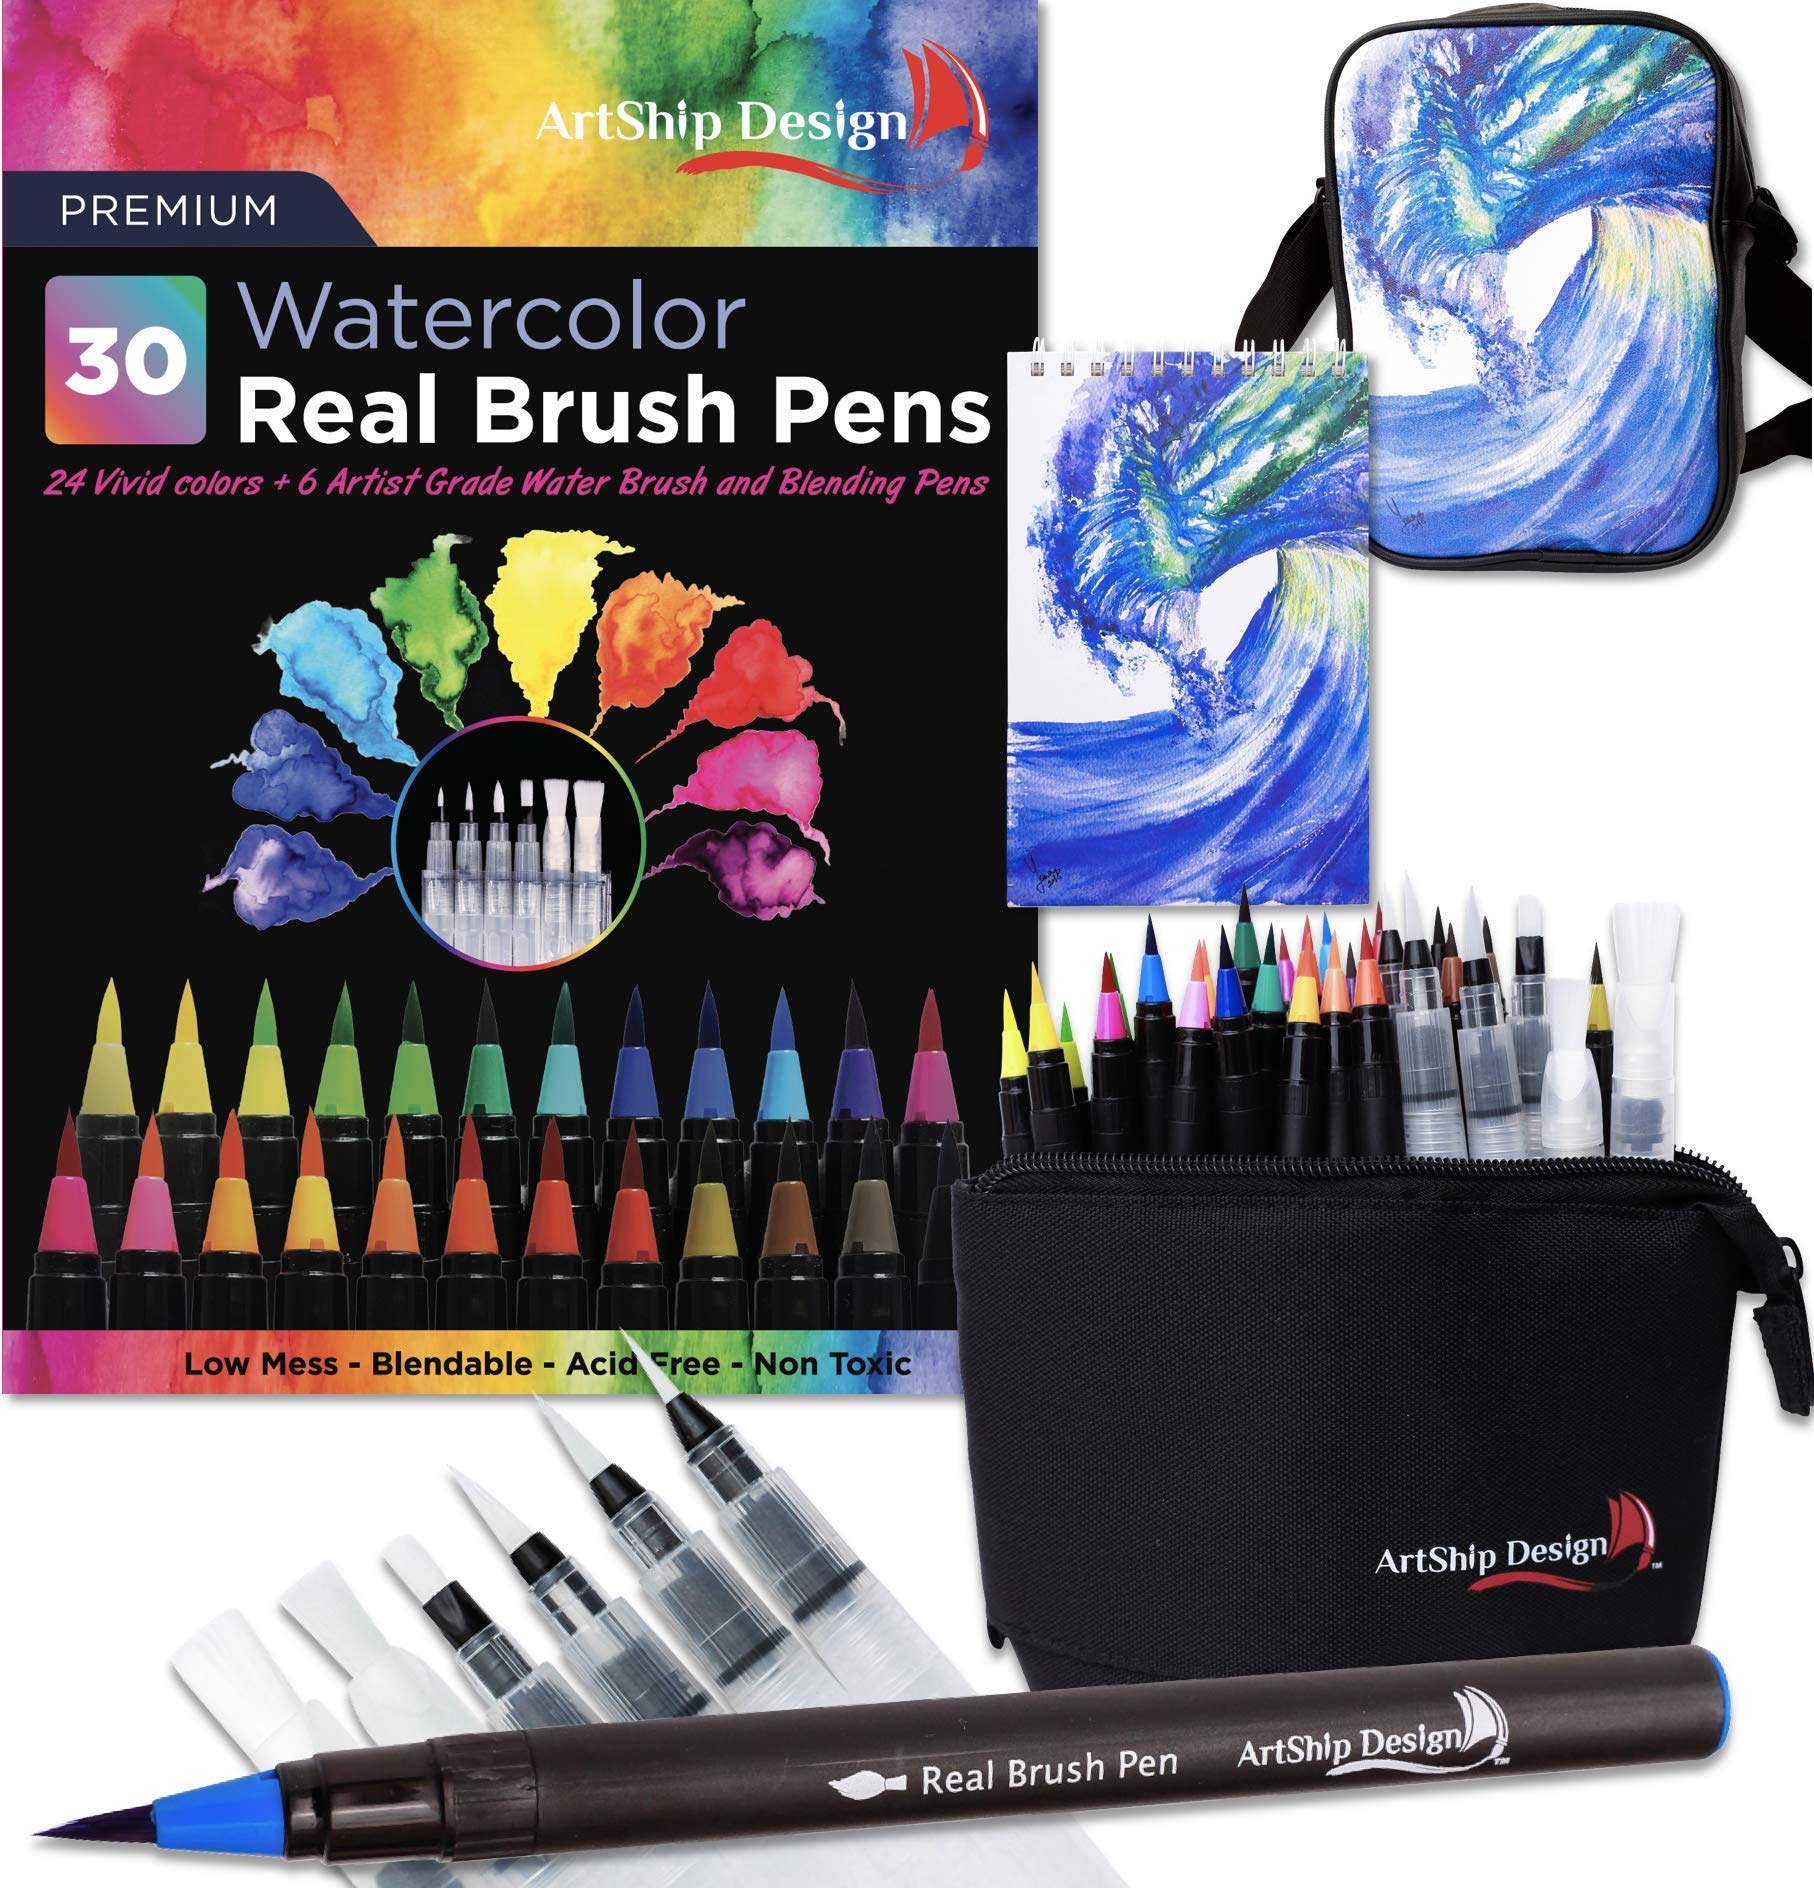 Gift Pack 30 Watercolor Brush Pens, Matching Messenger Bag and Watercolor Pad, Custom Folding Upright Pen Case, 24 Colors 6 Water Brushes, Real Nylon Brush Tips, Watercolor Painting, Low Mess, Wave by ArtShip Design